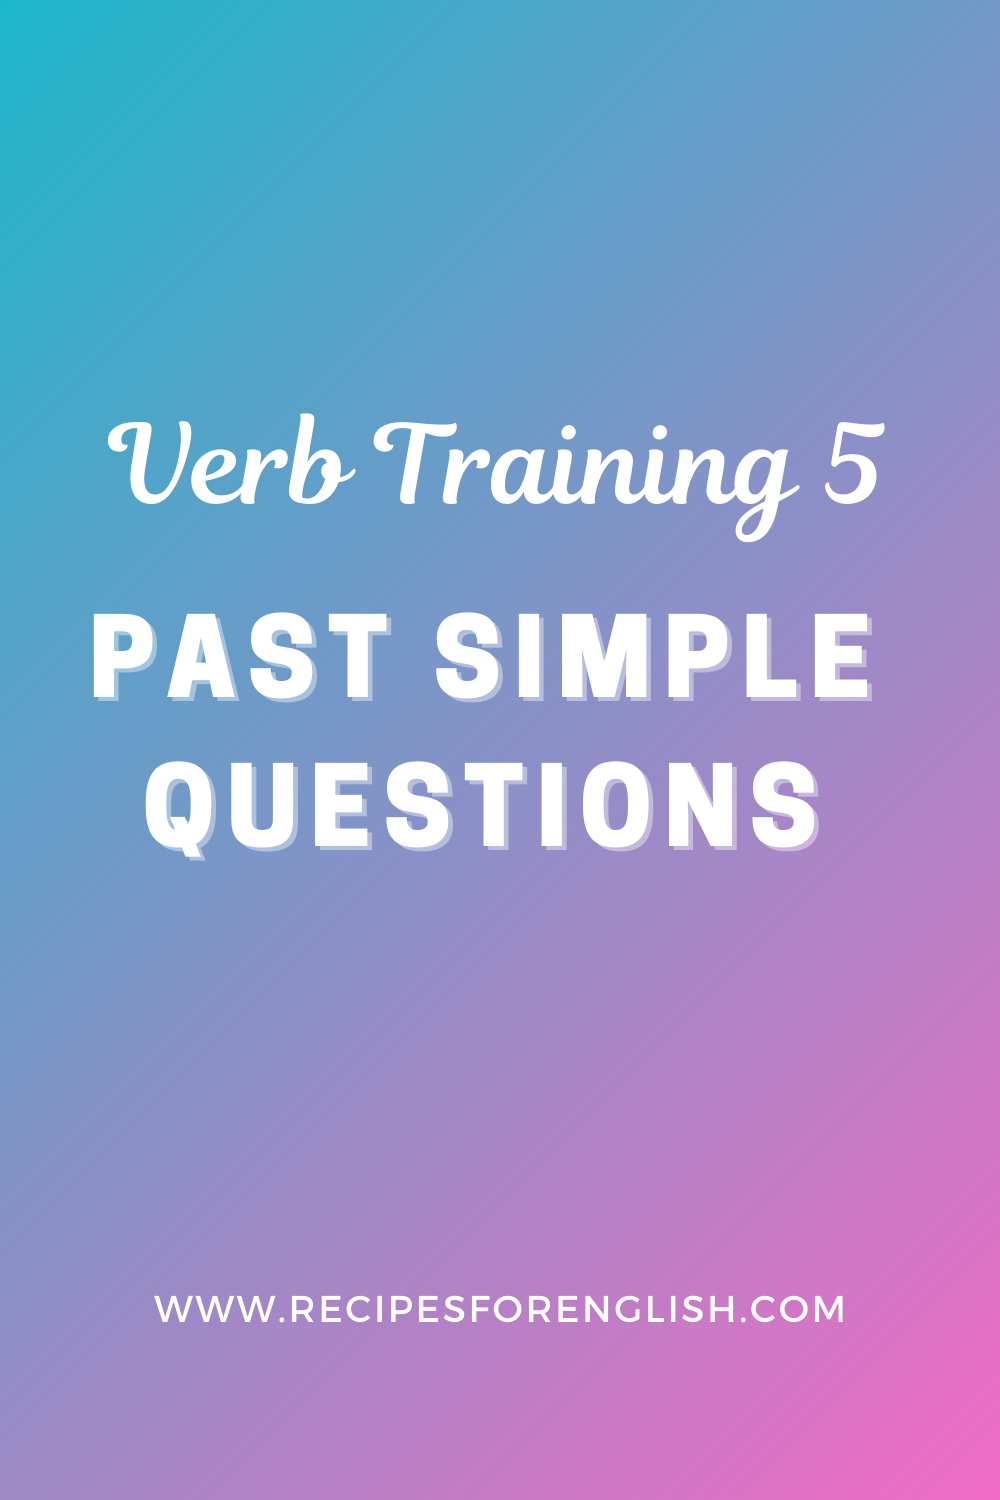 Past Simple Questions Worksheet This Or That Questions Grammar Exercises Simple Sentences [ 1500 x 1000 Pixel ]